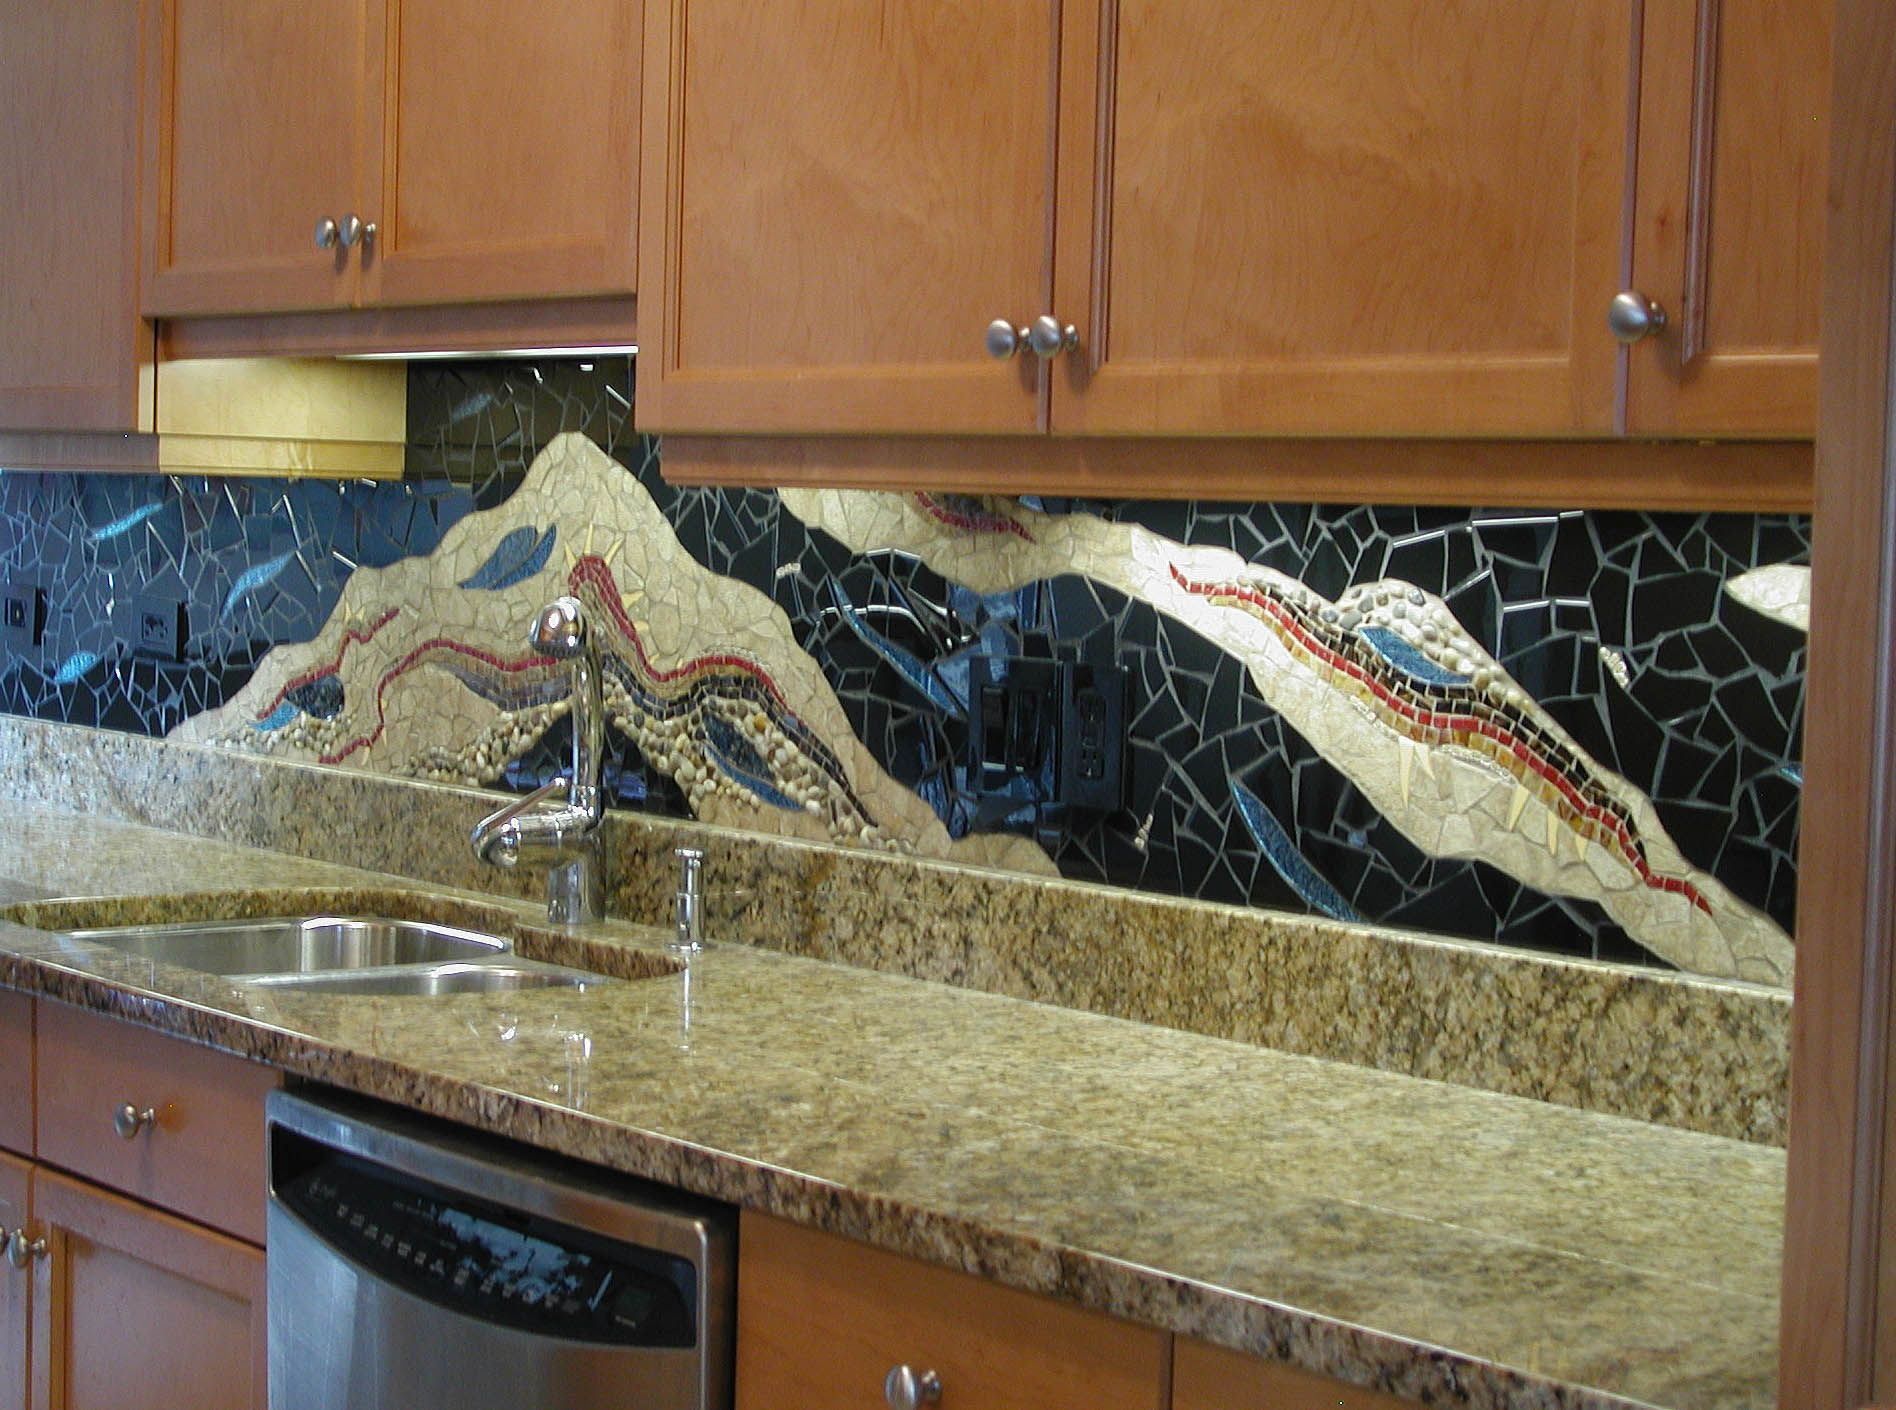 Easy Bathroom Backsplash Ideas Captivating Kitchen Backsplashes  Kitchen Remodel Designs Mosaic Backsplash Design Ideas